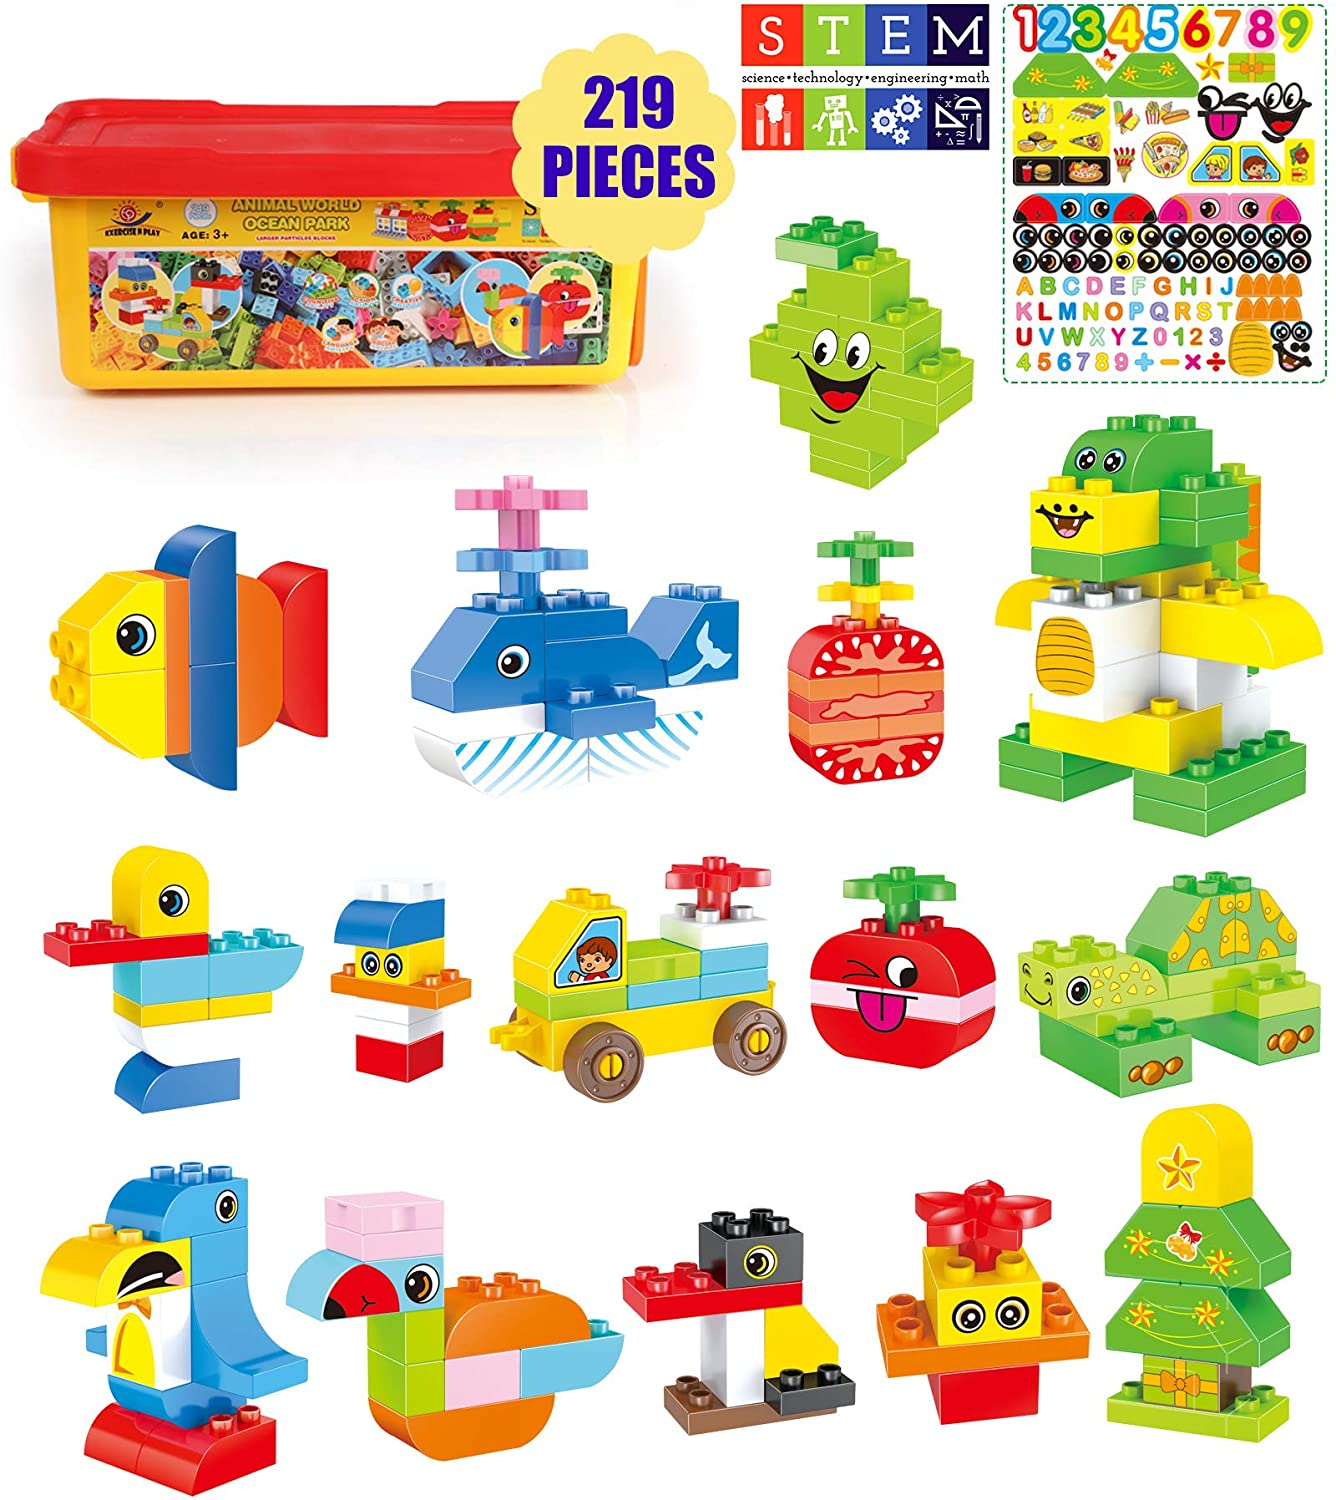 Exercise N Play Stem Building Block Set For Toddlers Diy Animals Construction Large Building Bricks Kit With Storage Box Educational Preschool Learning Toy Gift For Kids Boys Girls 219 Pieces